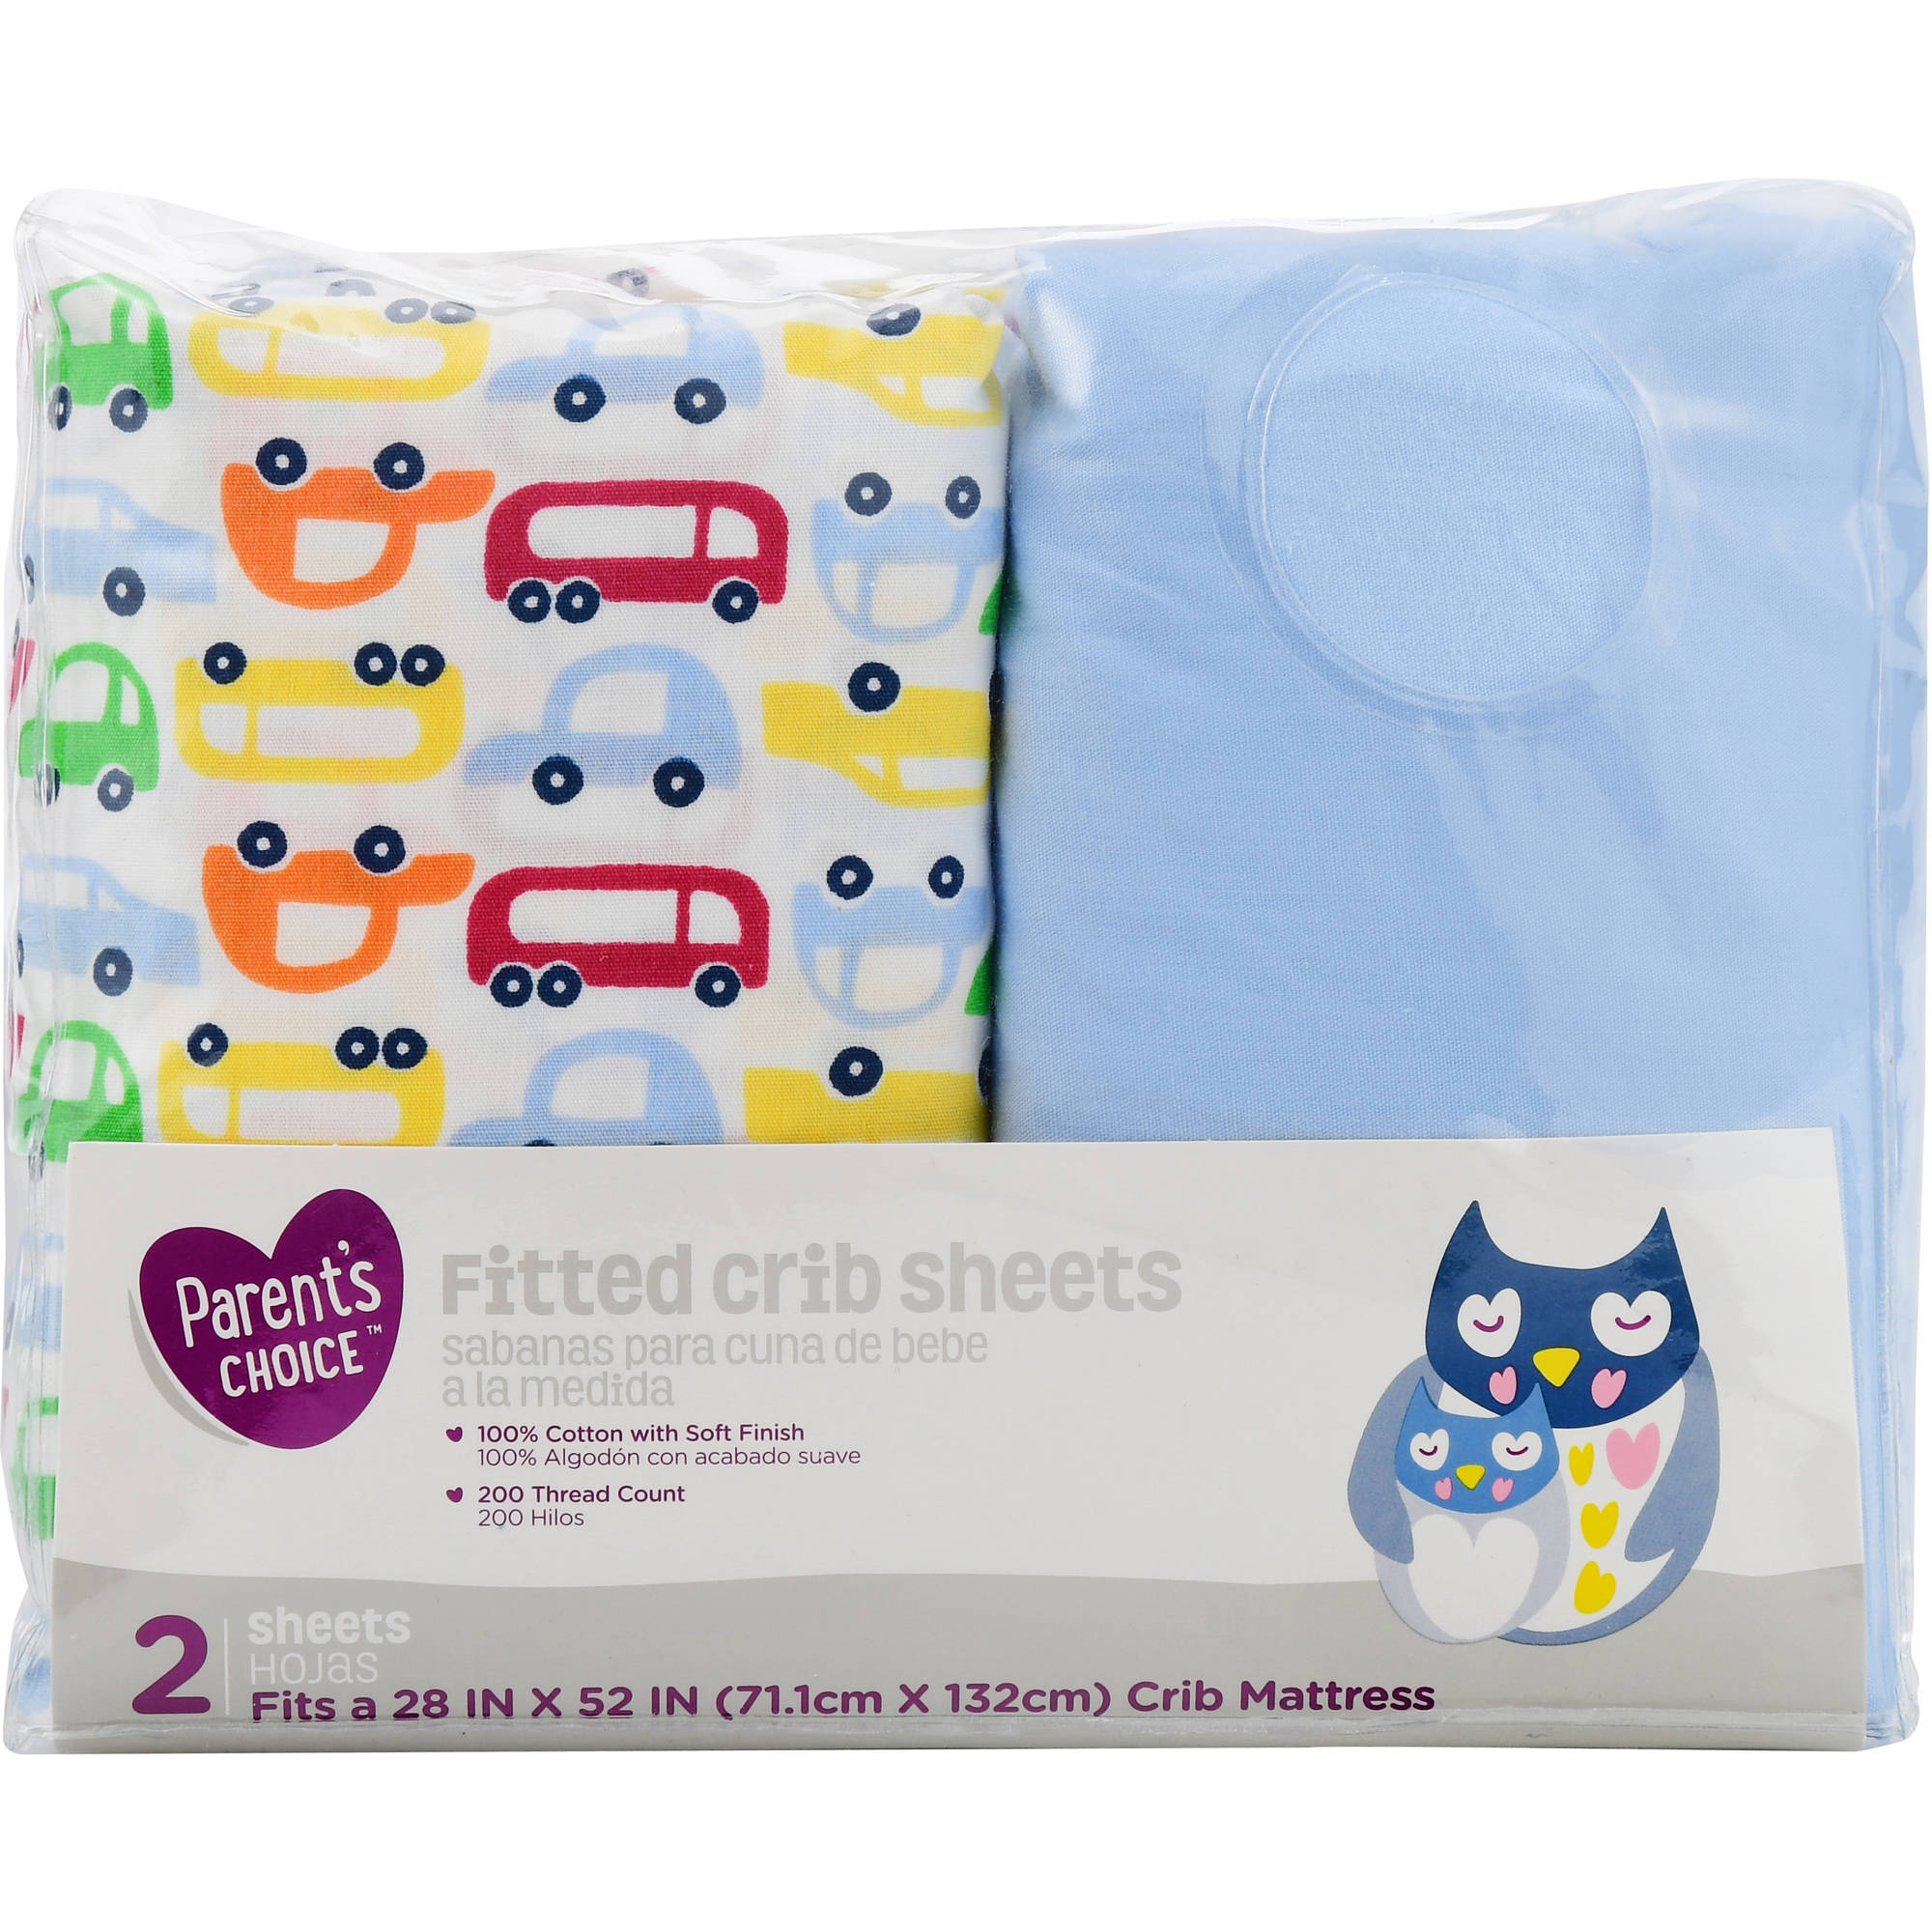 Parent's Choice Fitted Crib Sheets, Cars, 2 Count